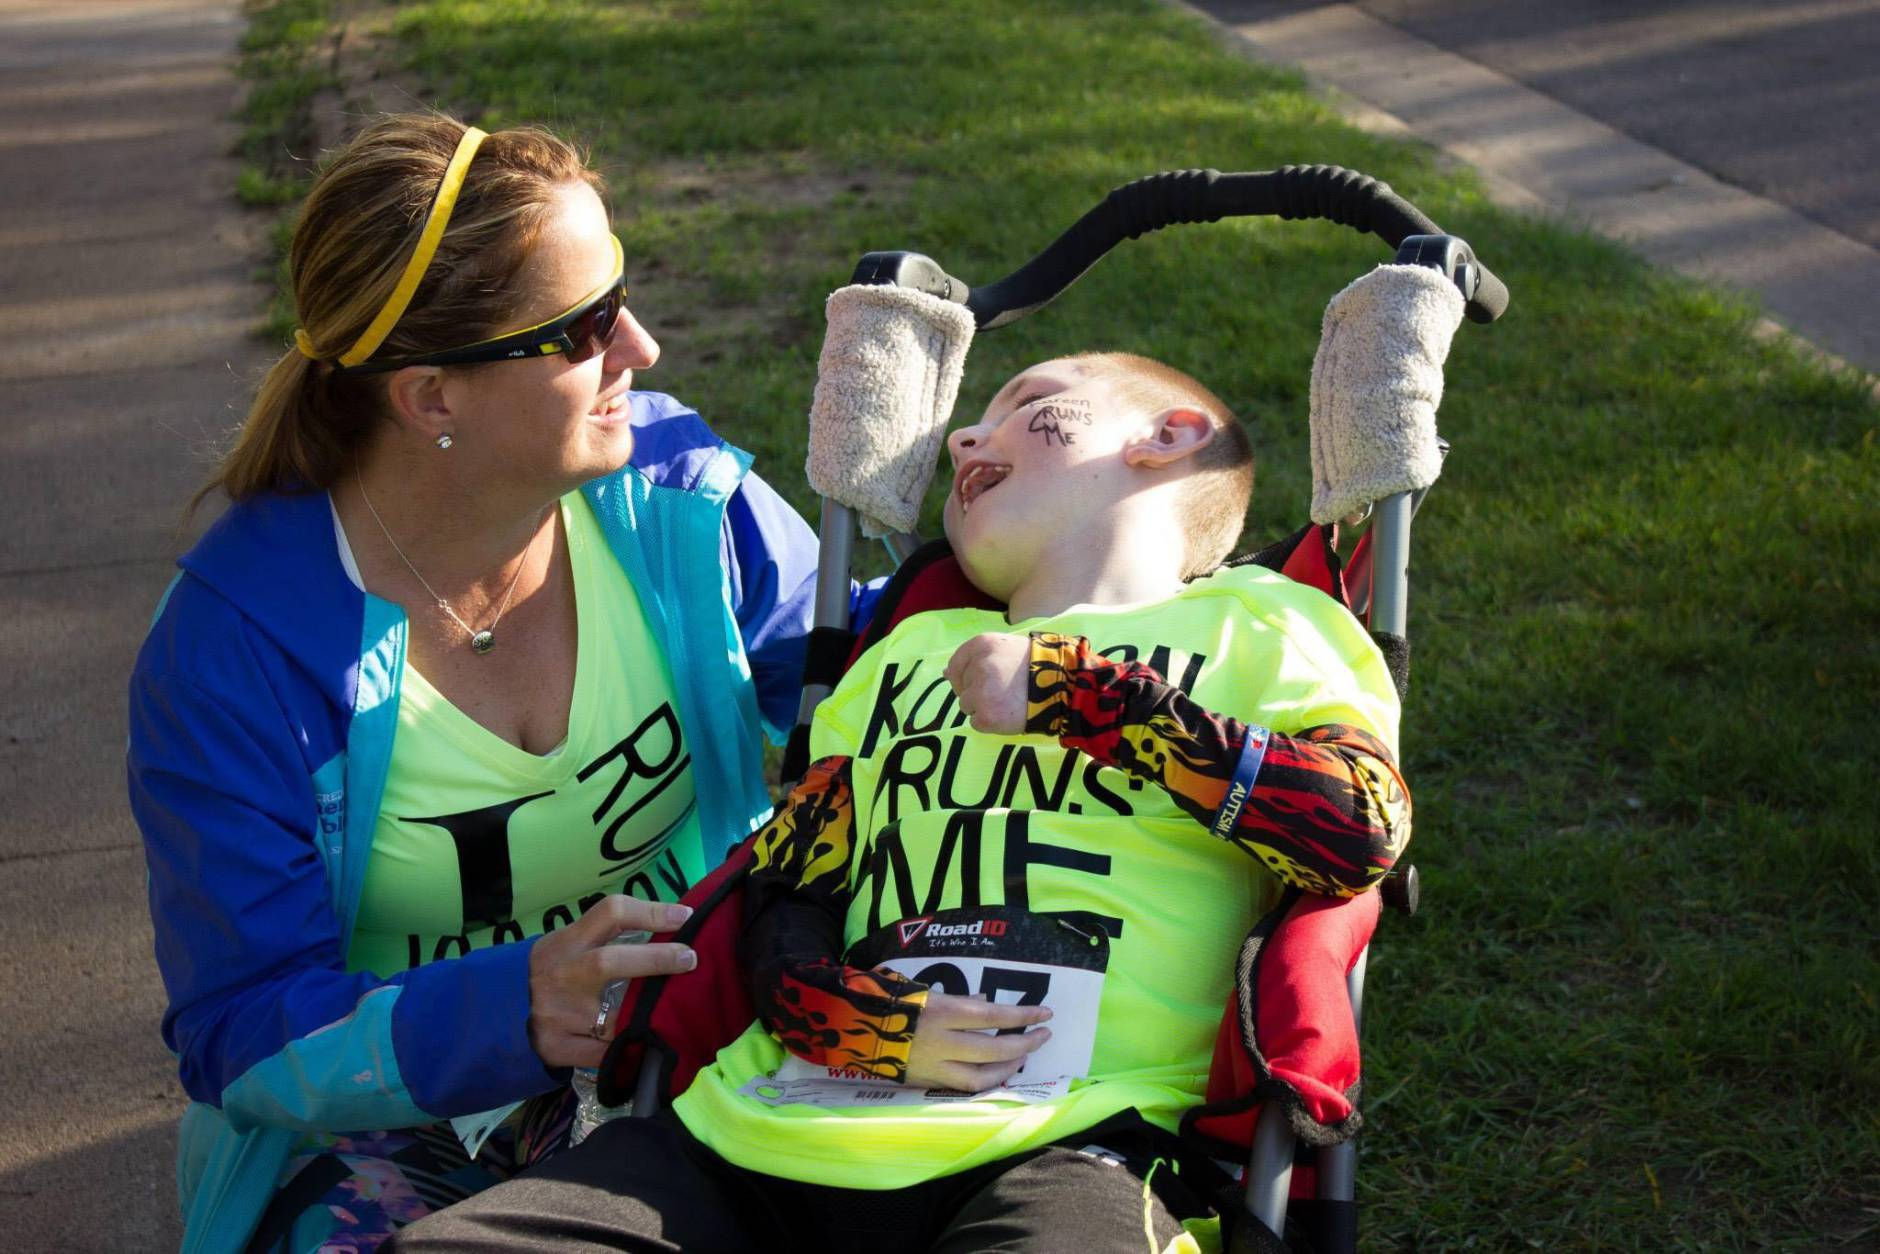 """When Kareen Lawson's feet hit the pavement at this year's Marine Corps Marathon, she won't just be powering herself through the 26.2 mile race. She will also be pushing her favorite 10-year-old buddy, Jeffrey Bergeman, in his running chair. """"He obviously cannot run for himself, so I have the honor of being his legs,"""" she said. They are pictured here at their first race in Wisconsin, where the Bergeman family lives. (Courtesy Michael Ojibway)"""